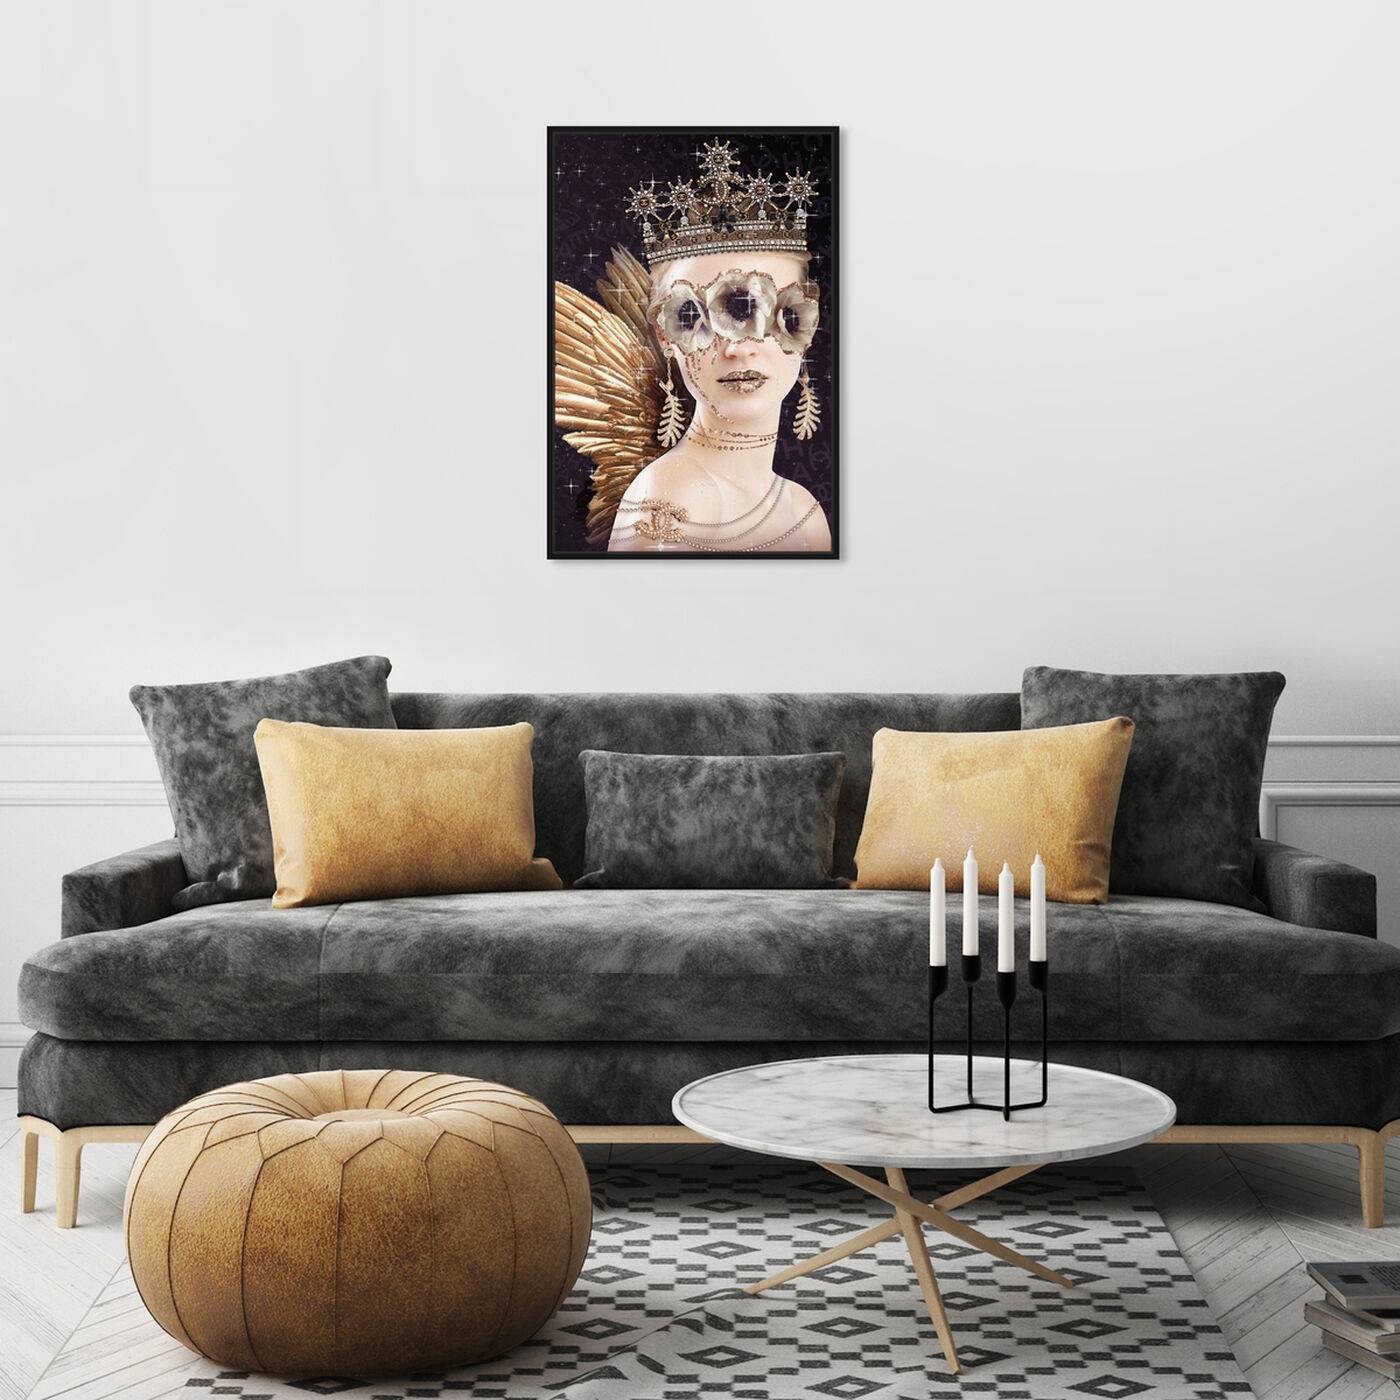 Hanging view of Camelia Queen featuring fashion and glam and accessories art.